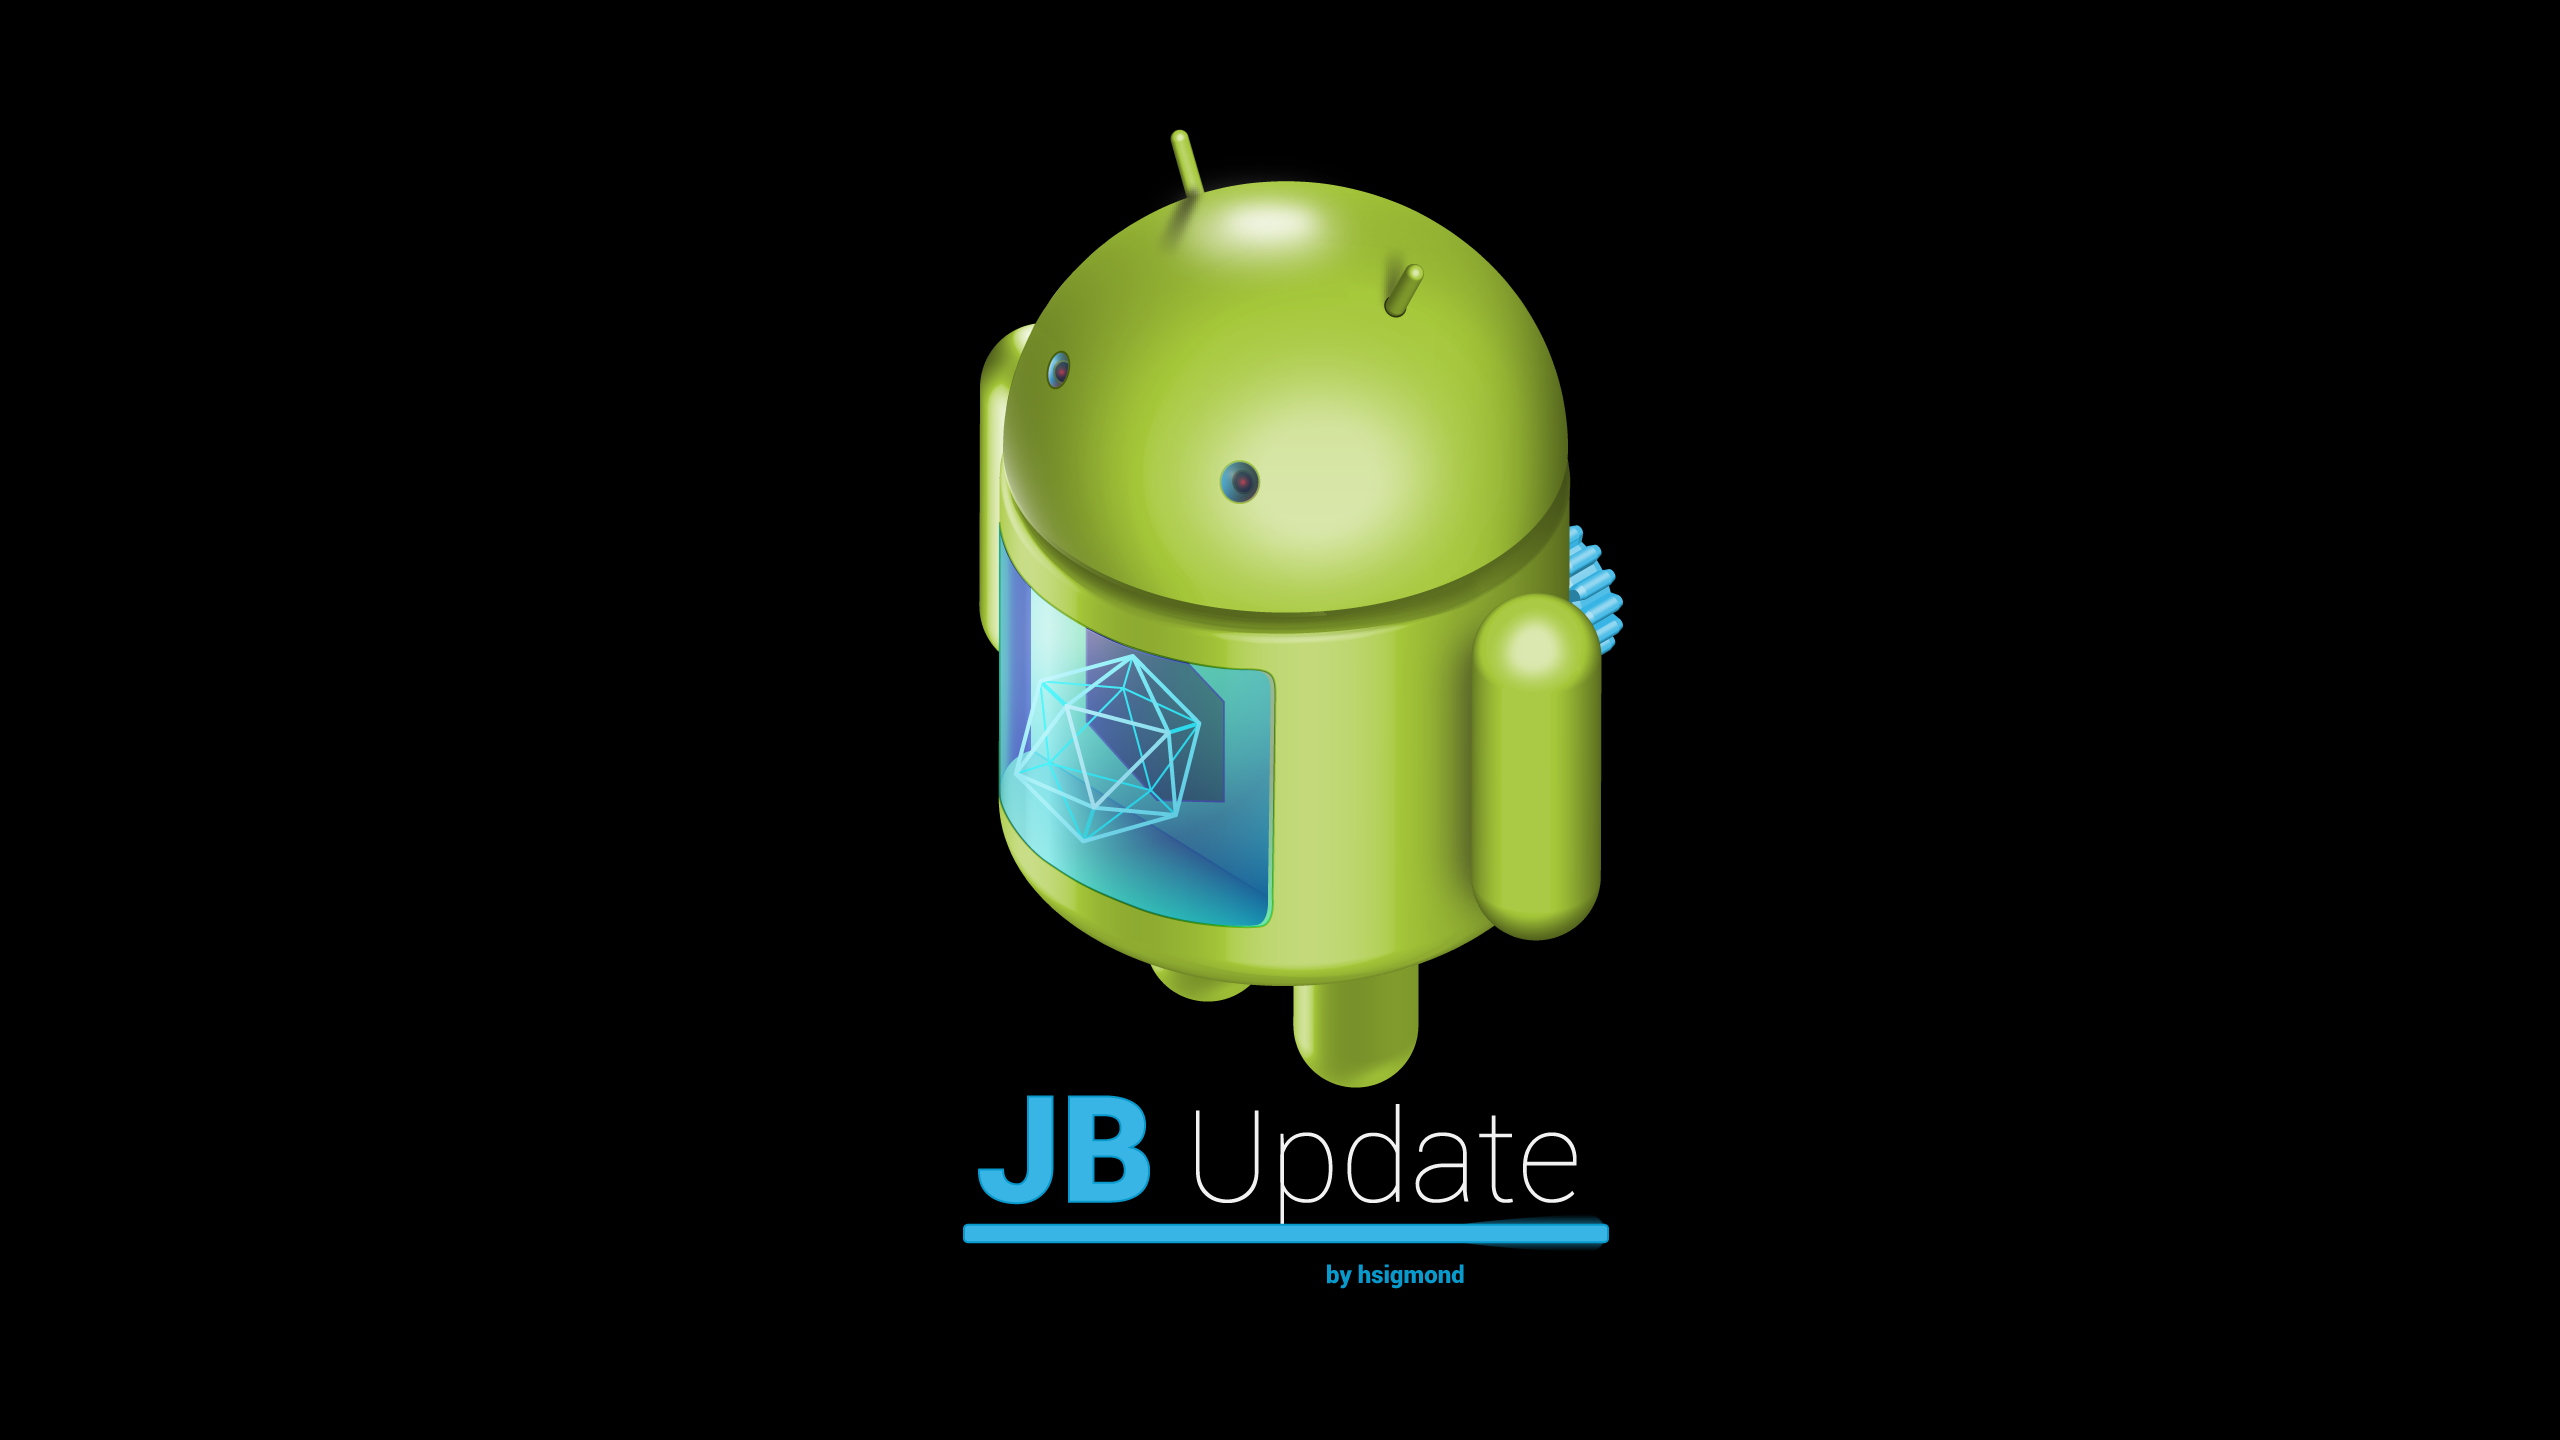 android wallpaper jelly bean update by hsigmond fan art wallpaper ...